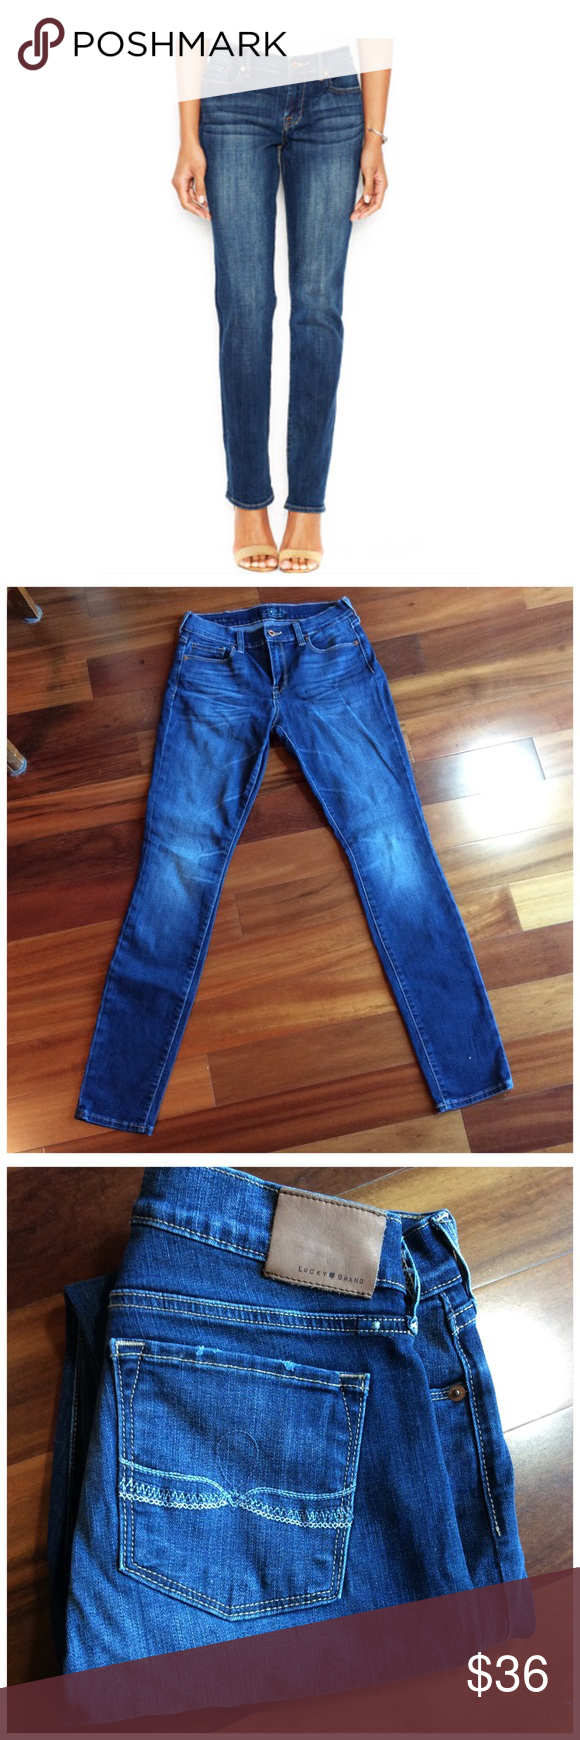 LUCKY BRAND SOFIA SKINNY Excellent condition cotton